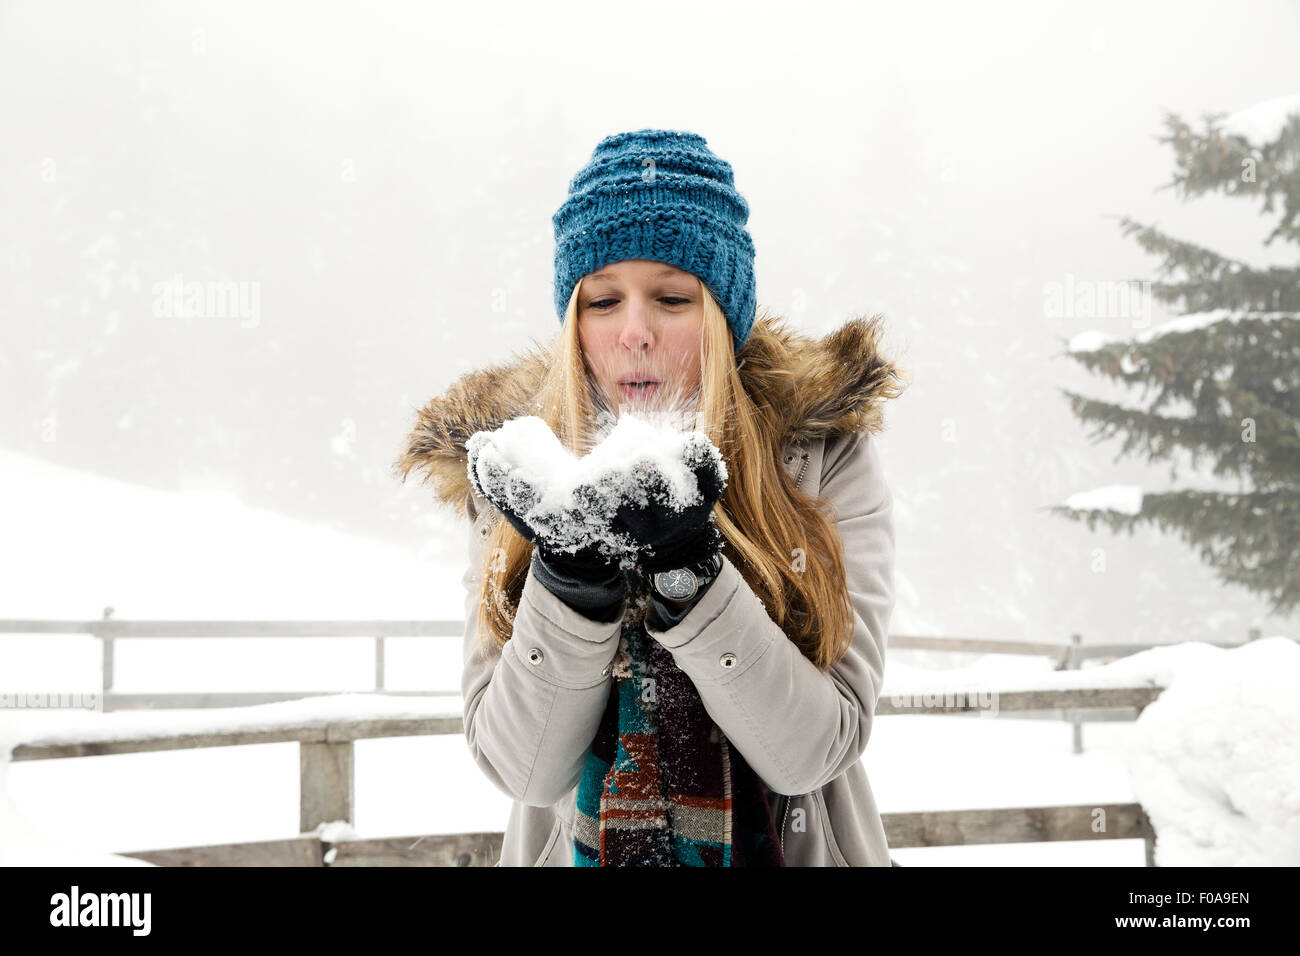 c60ee1b34ca85 Blowing Powder Stock Photos   Blowing Powder Stock Images - Alamy